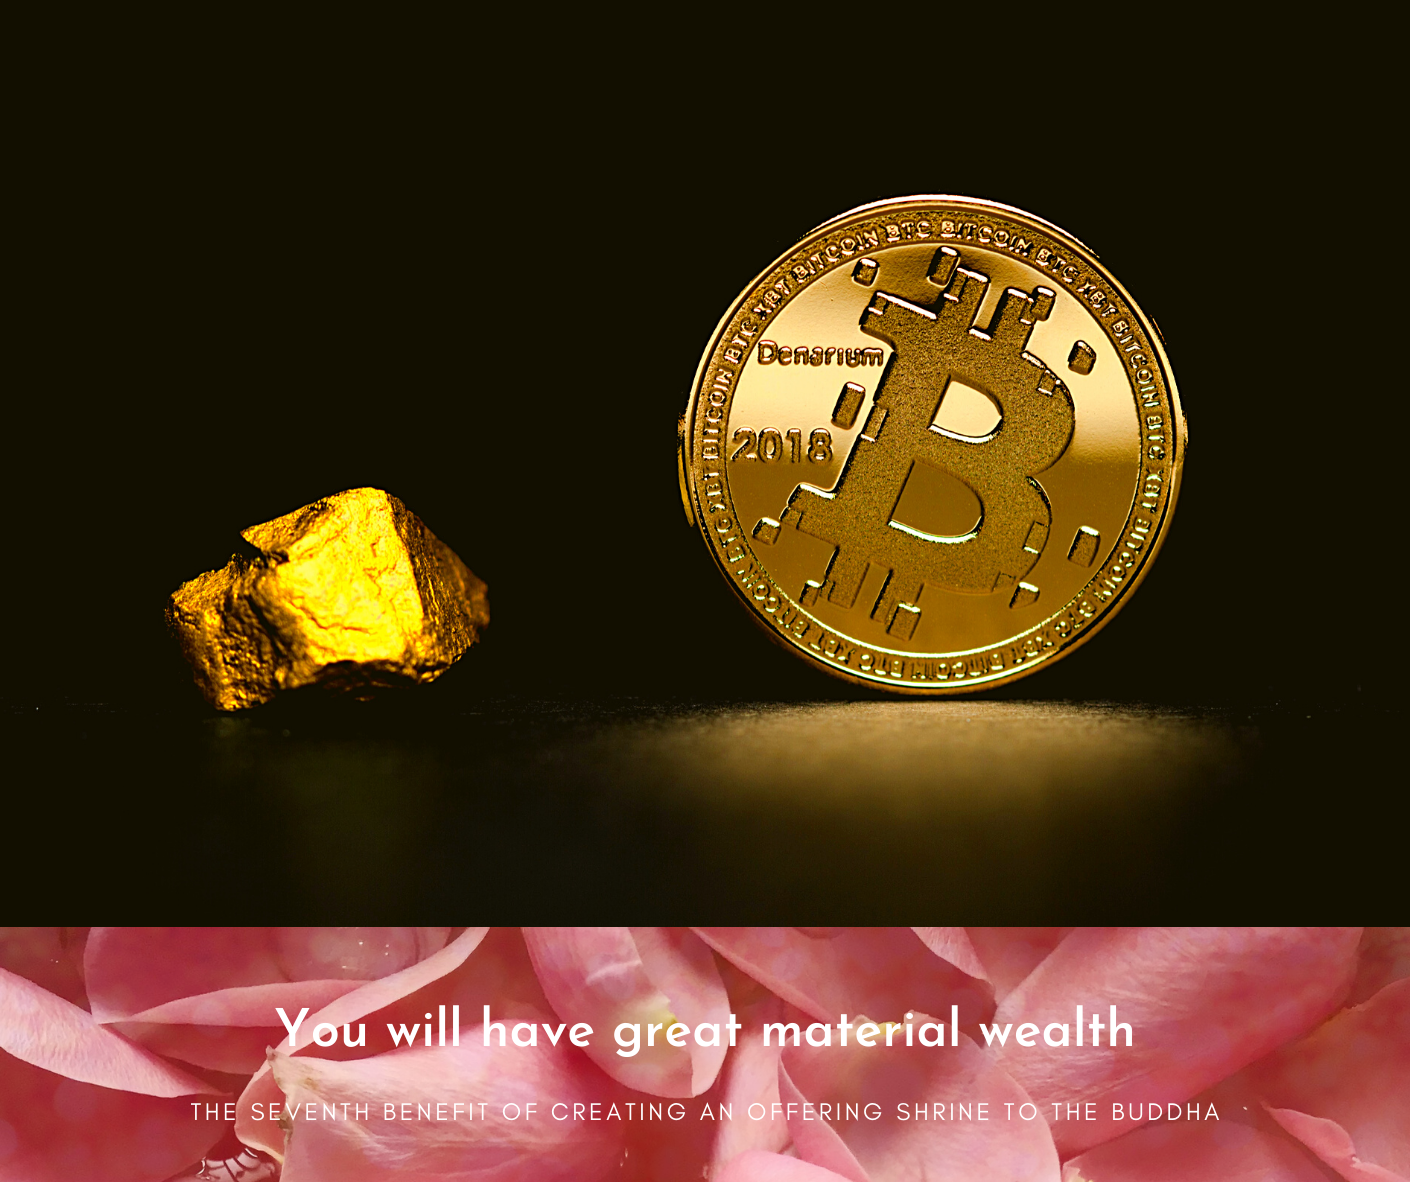 You will have great material wealth